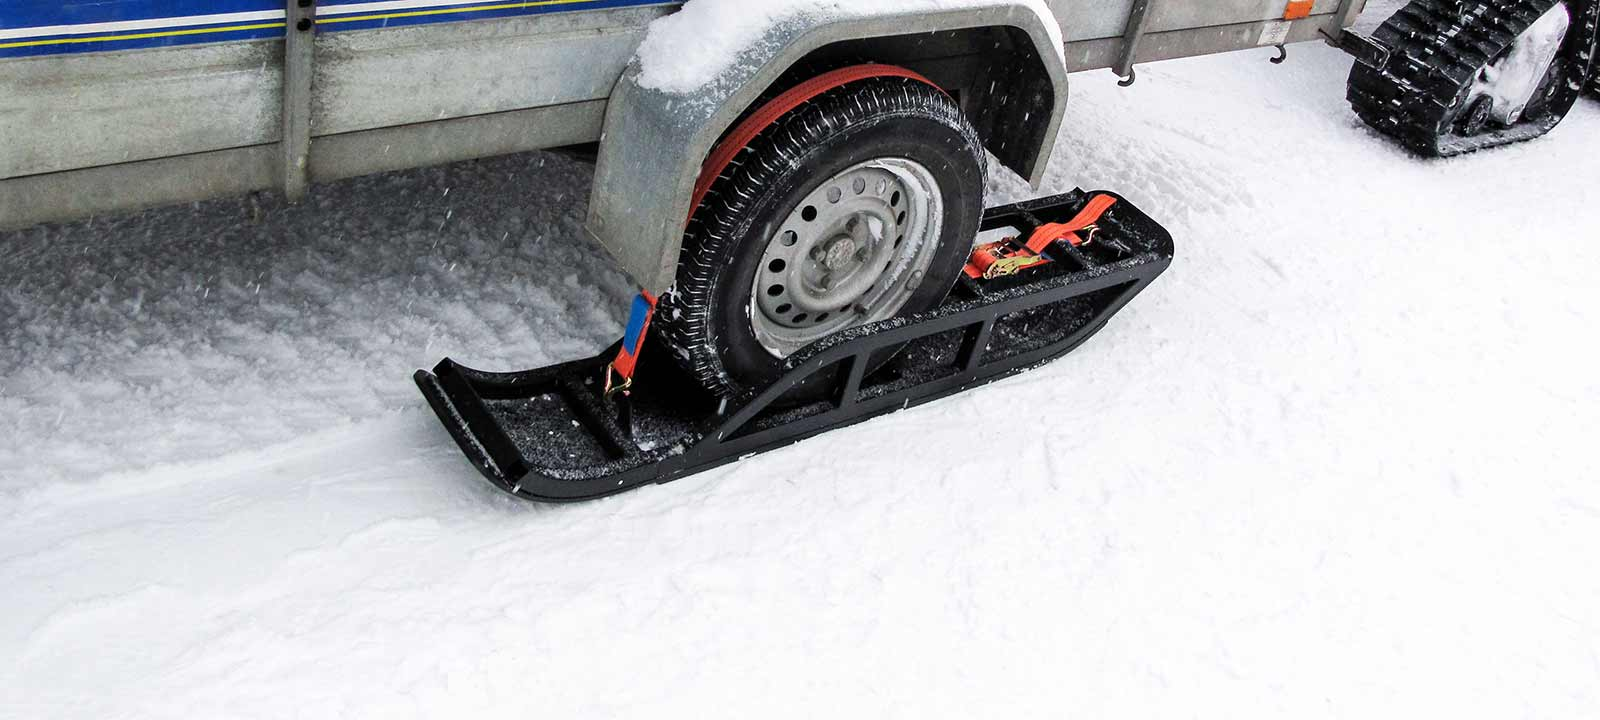 Trailer Skis In Usa Iron Baltic